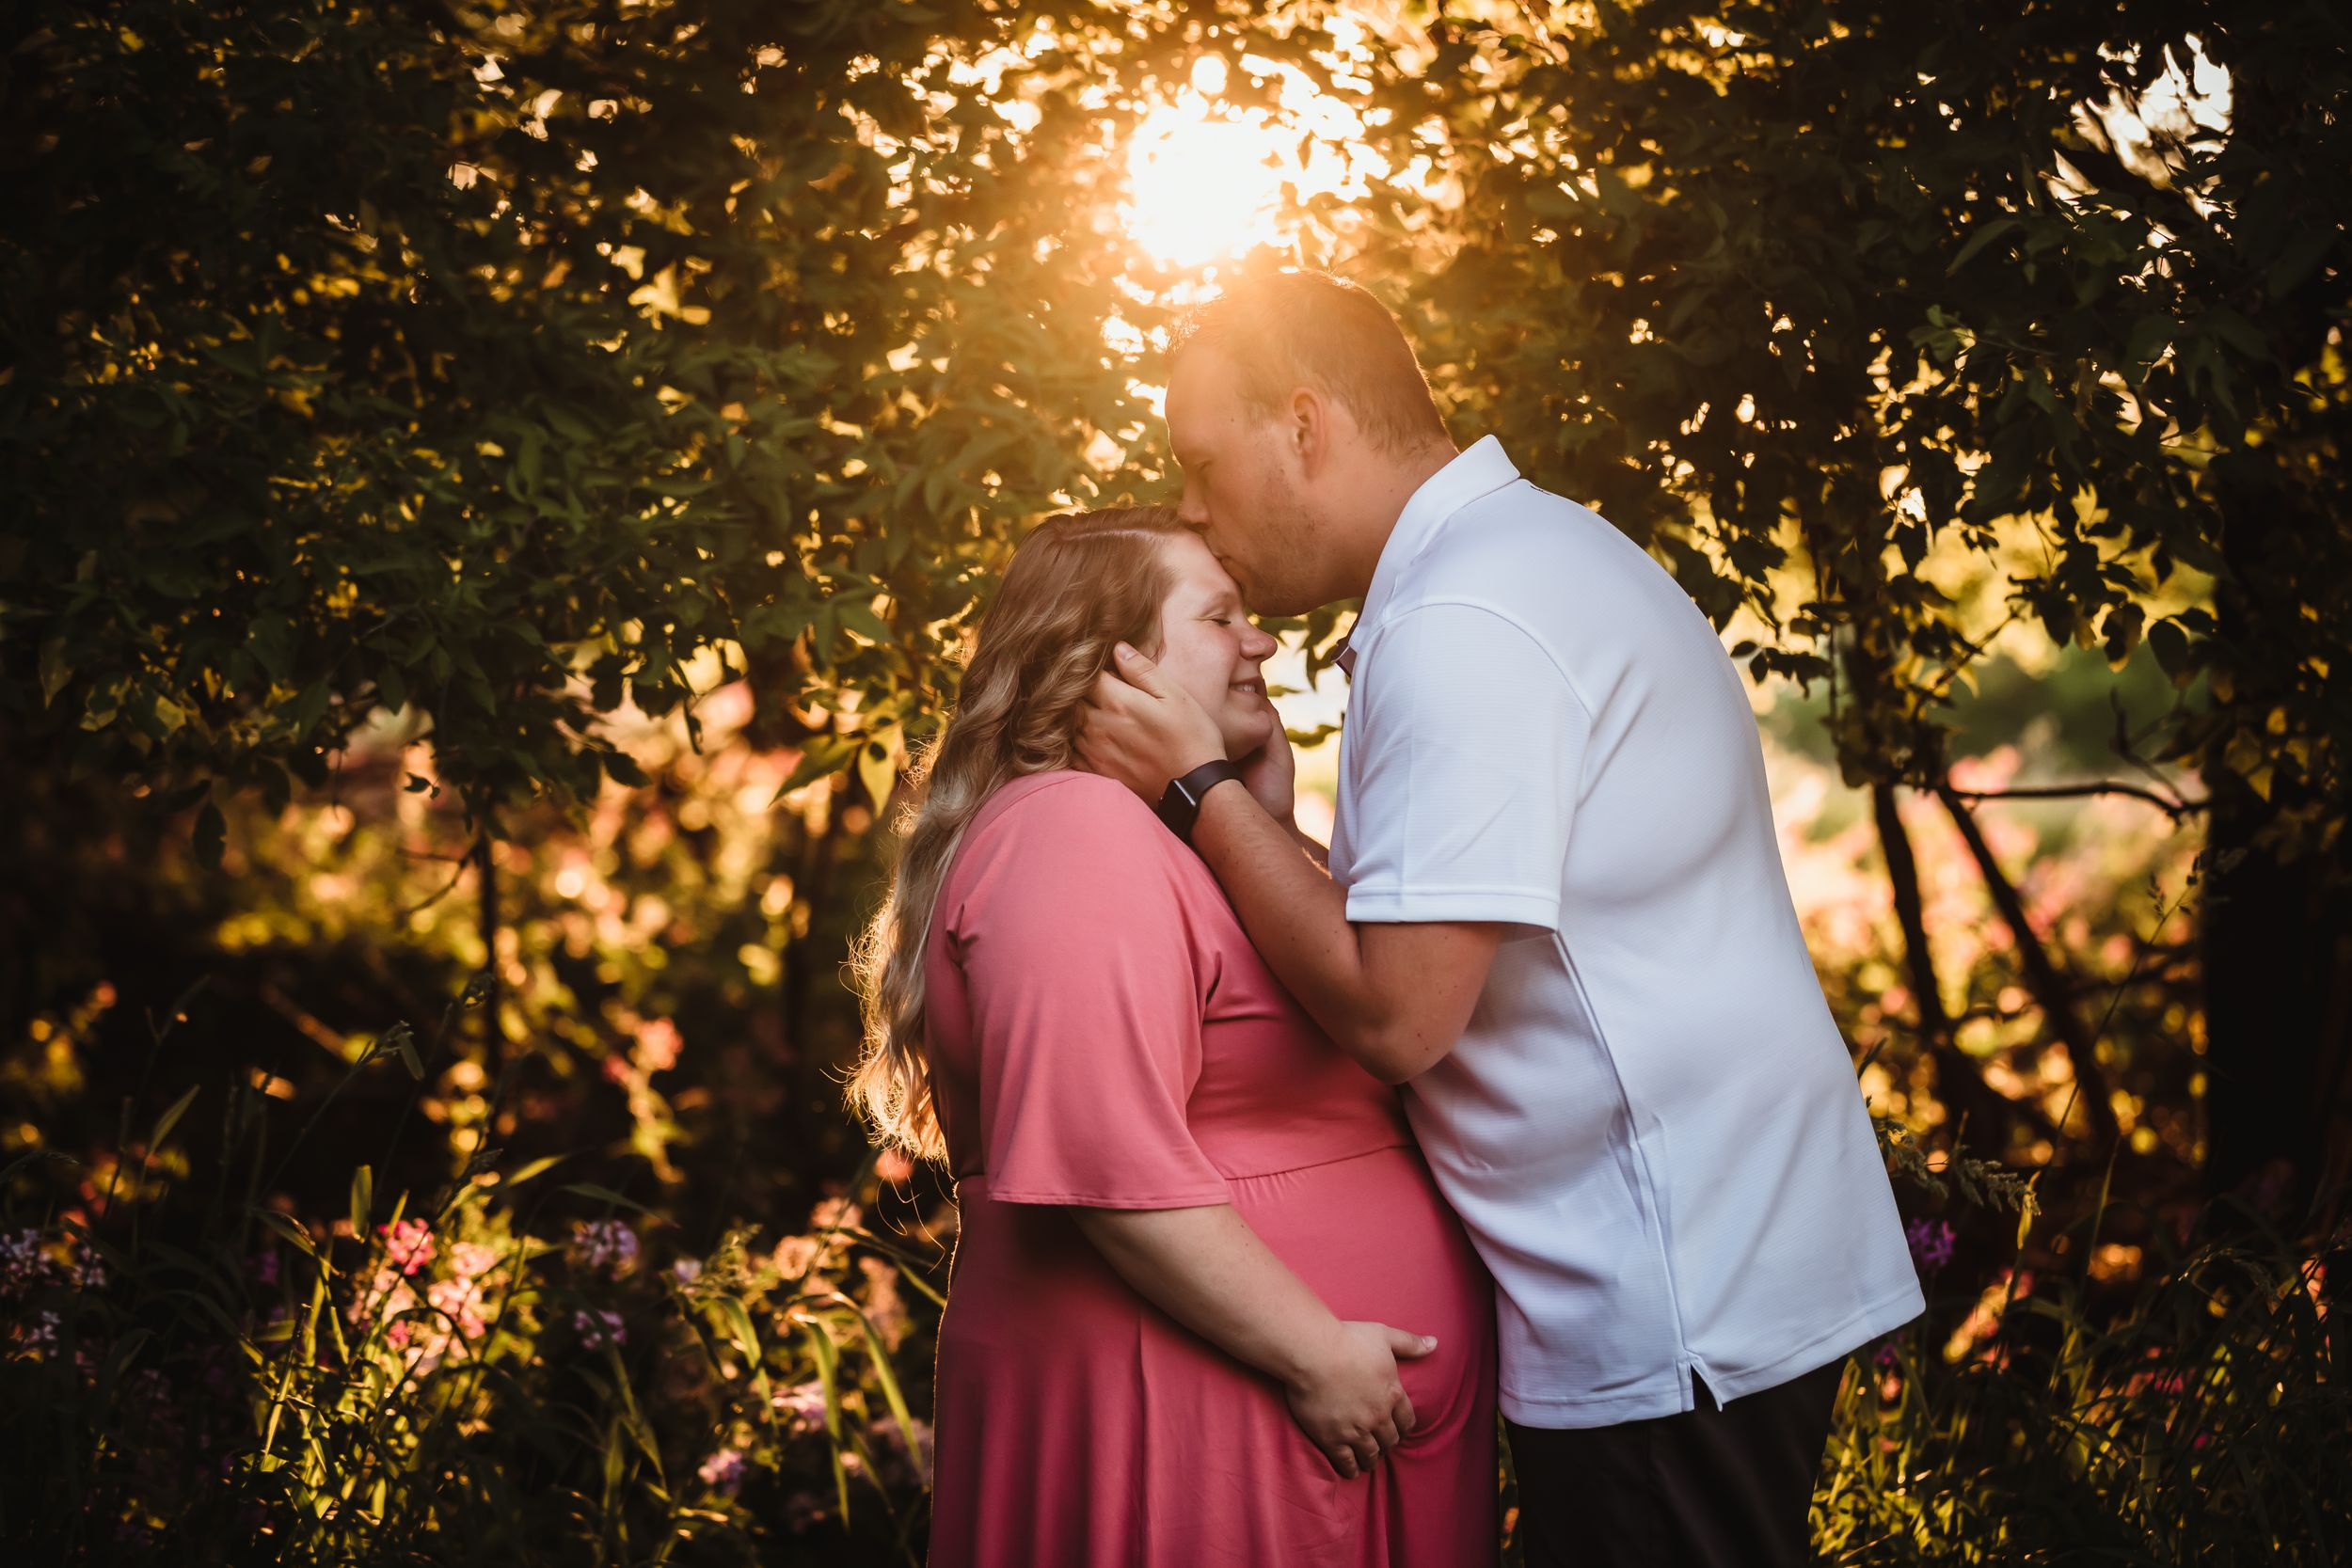 Man grabbing woman's face and kissing her forehead while she holds her pregnant belly.